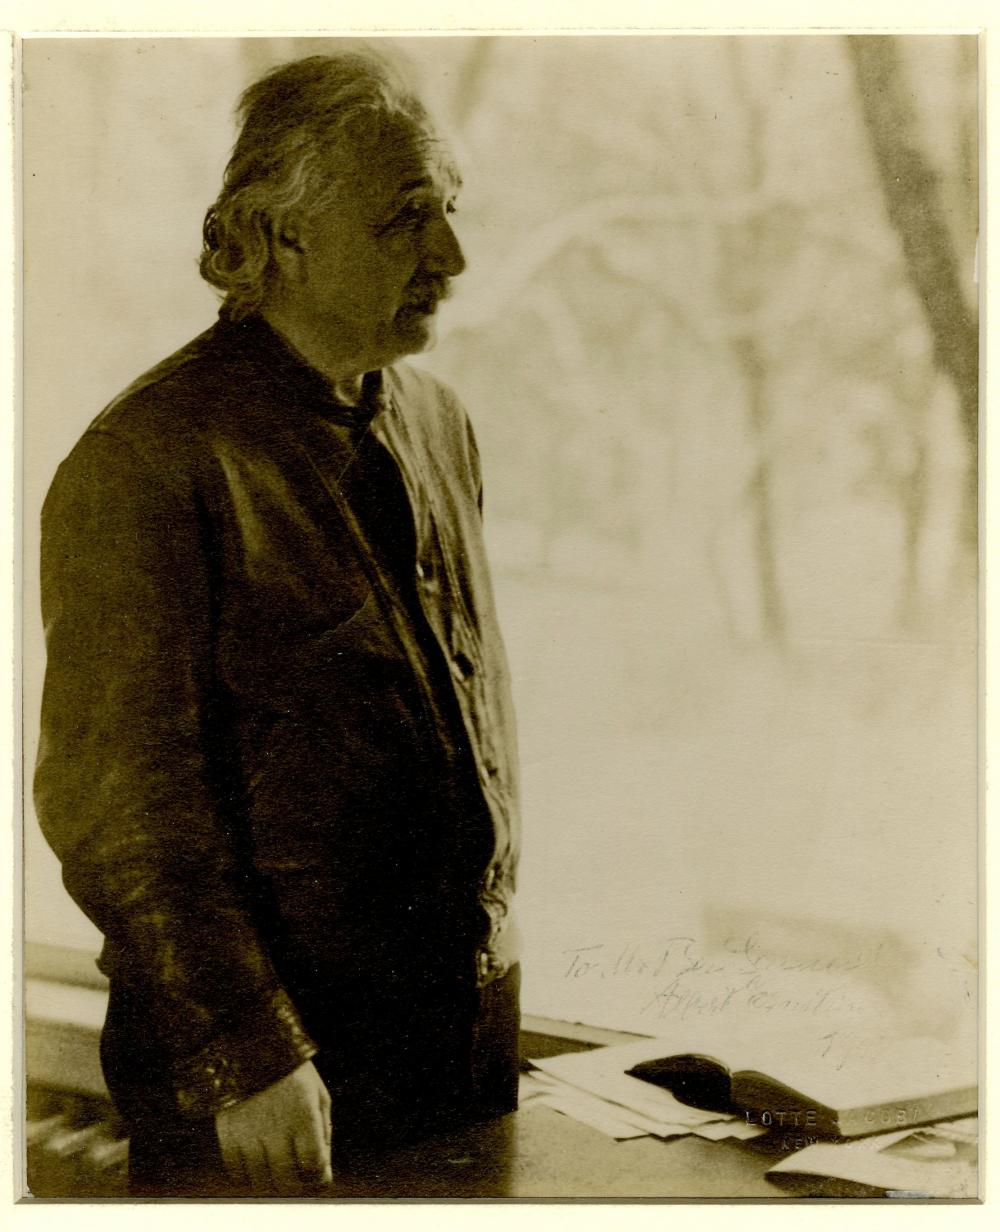 Iconic Image of Albert Einstein Signed, Wearing His Leather Jacket, By Lotte Jacobi